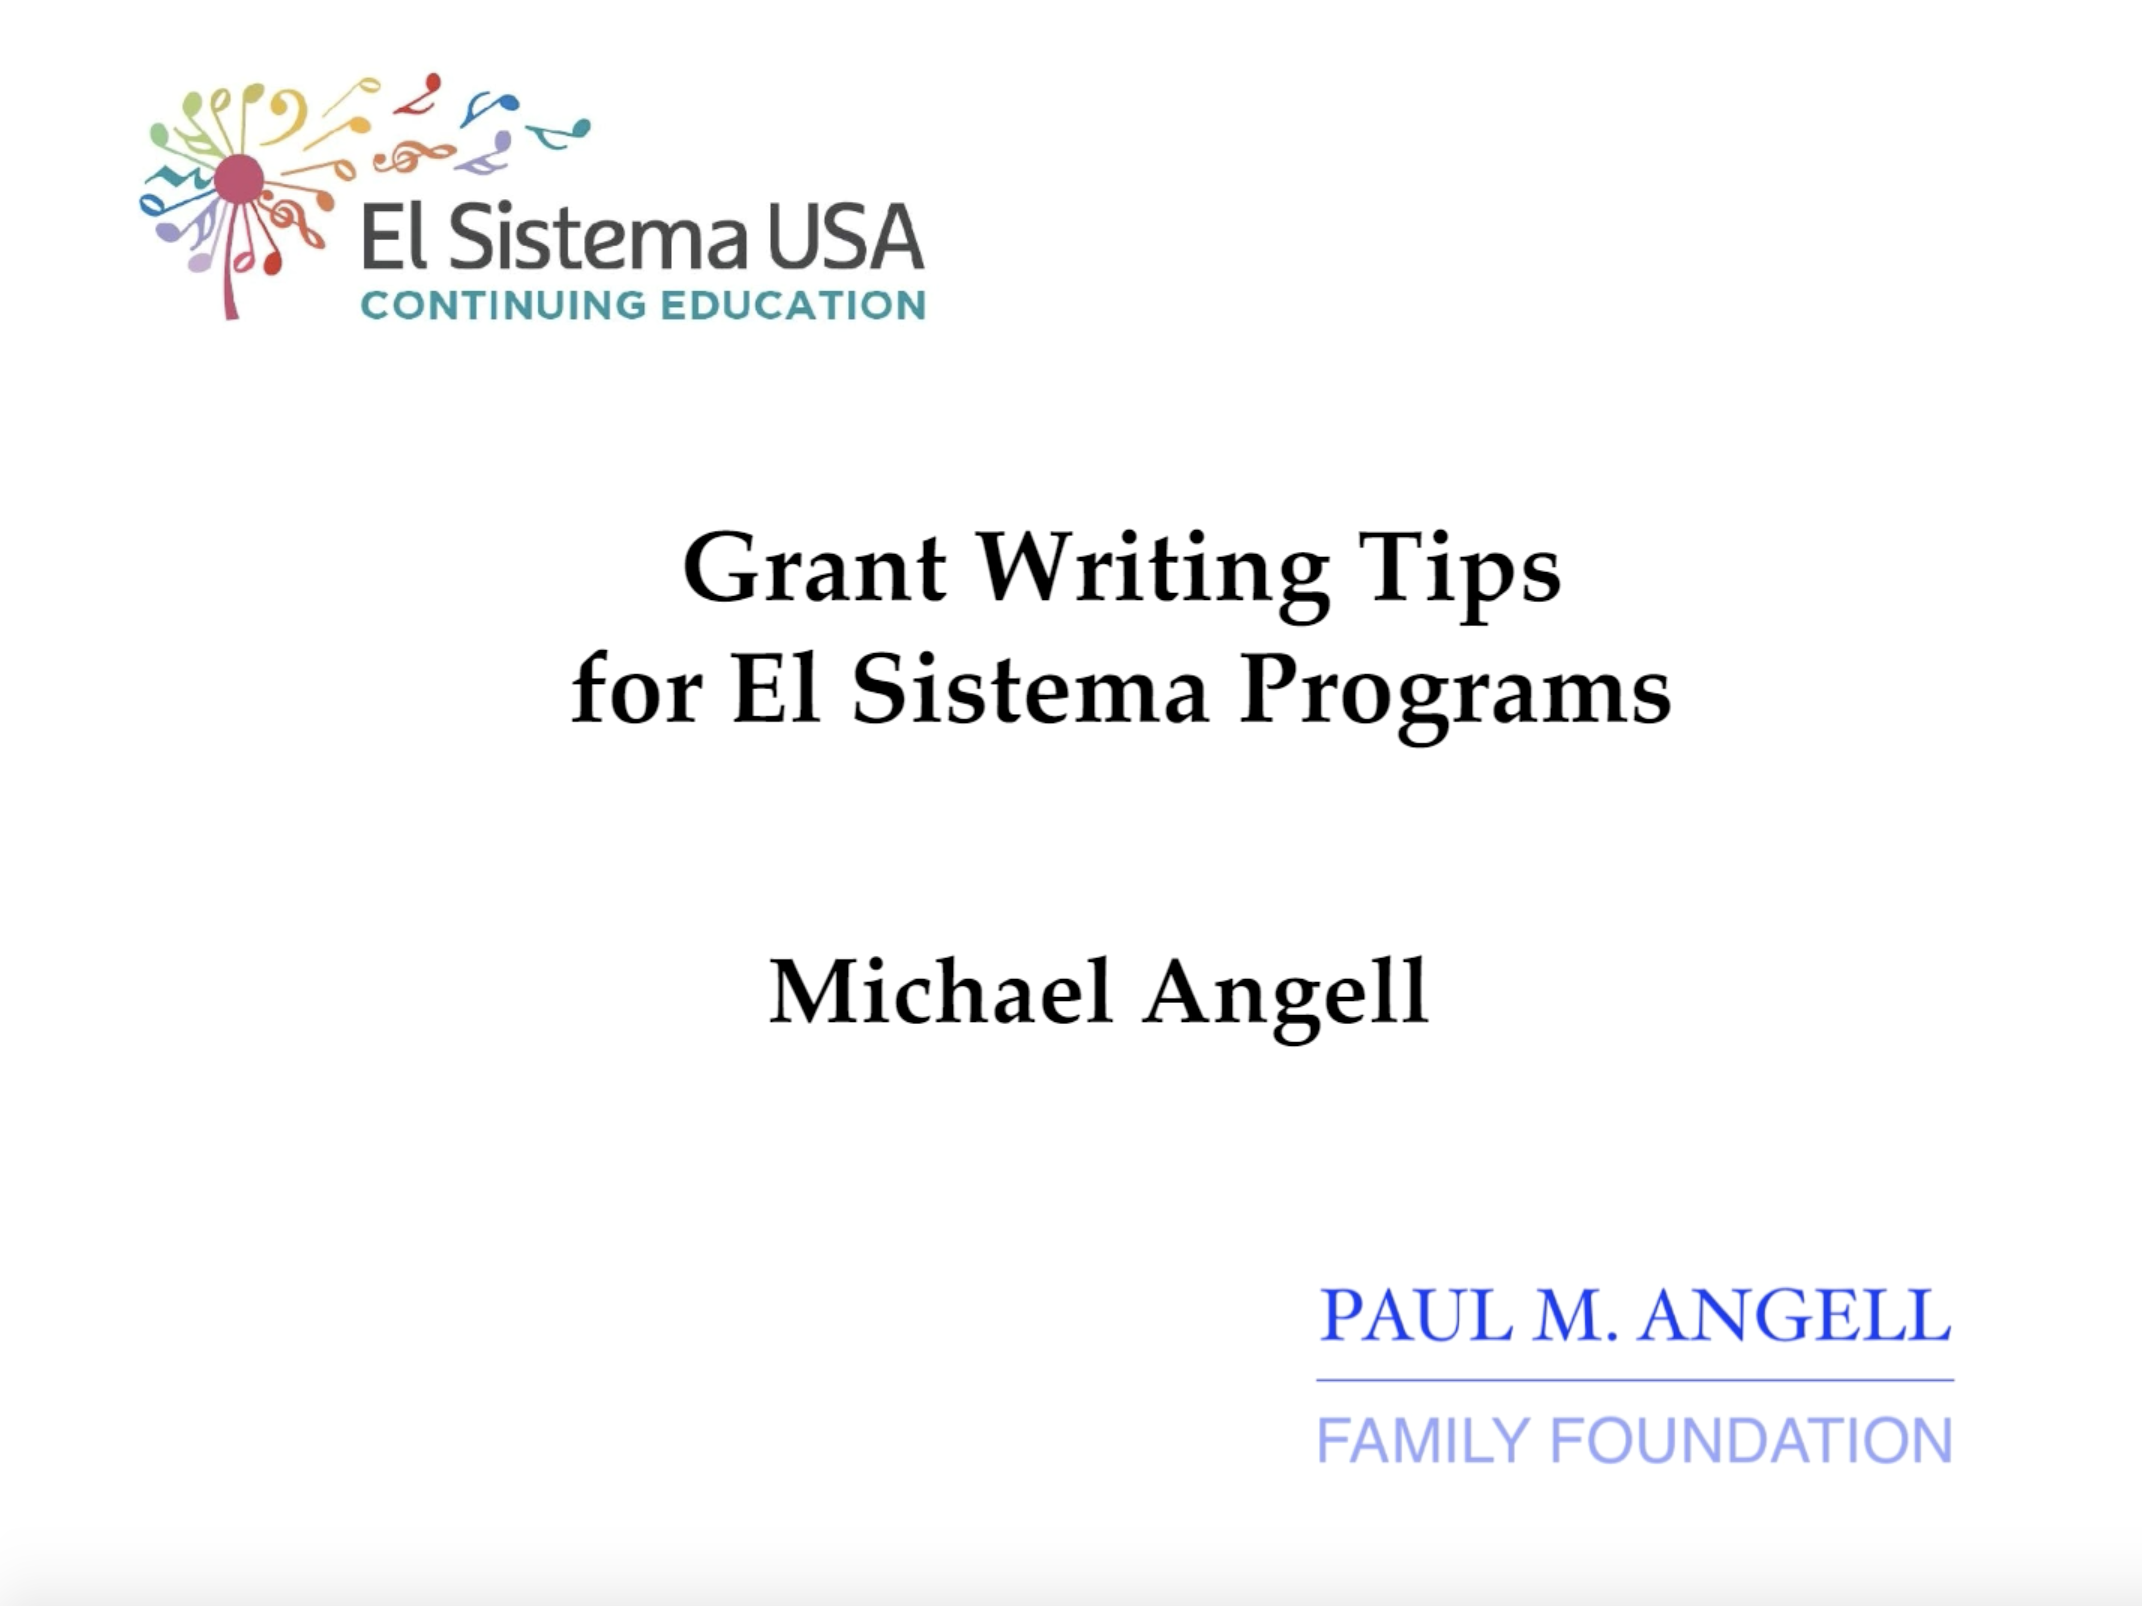 Webinar: Mike Angell On Grant Writing Tips For El Sistema Programs – April 2018